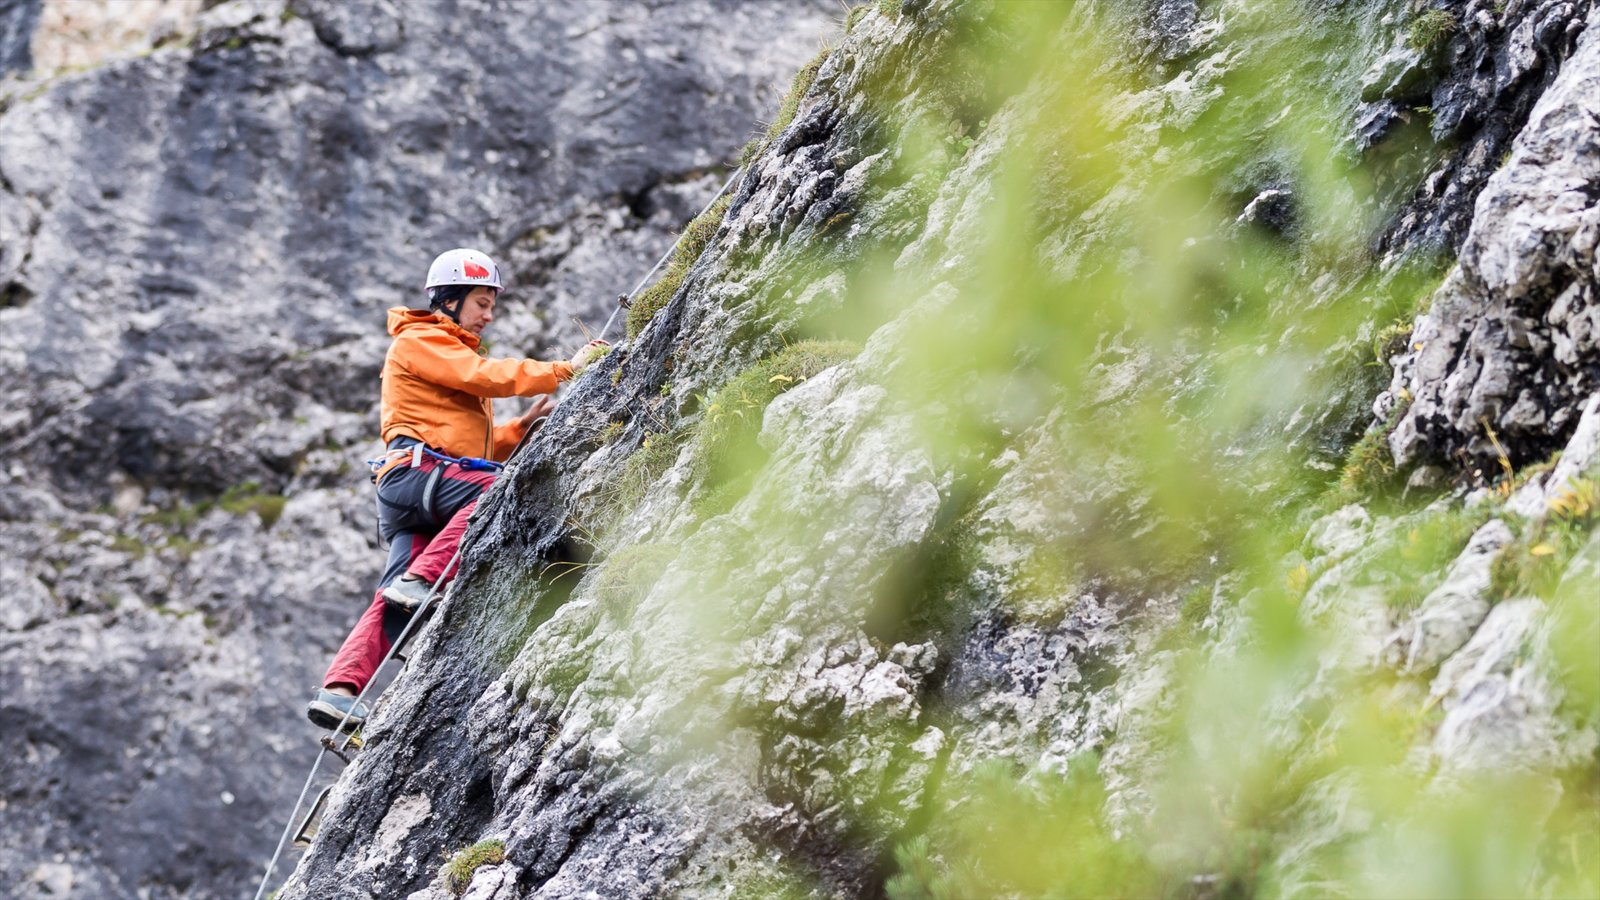 Alta Badia showing climbing as well as an individual femail